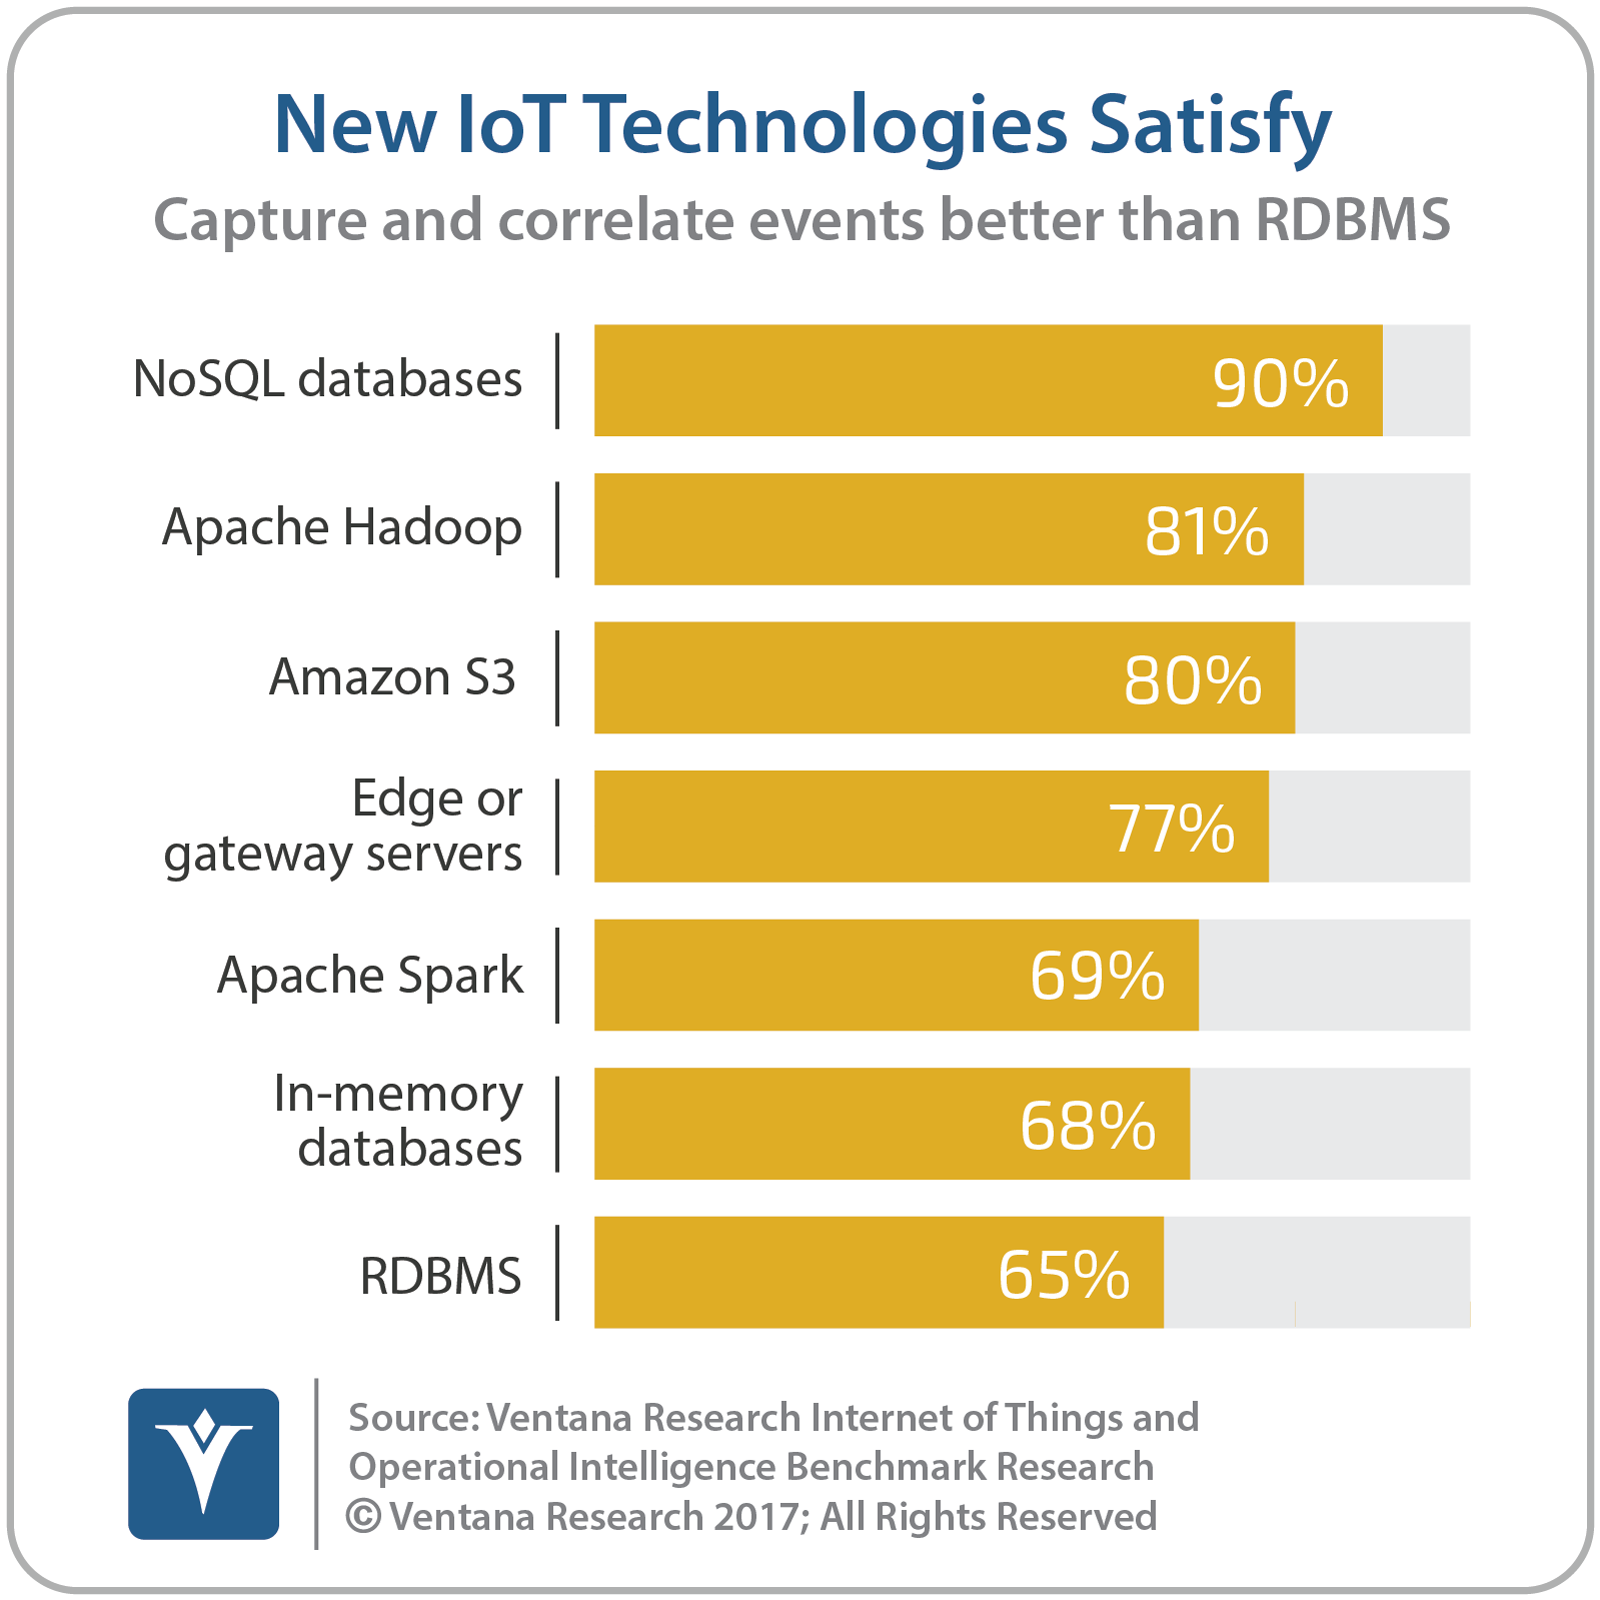 vr_IoT_and_OI_01_new_IoT_technologies_satisfy.png